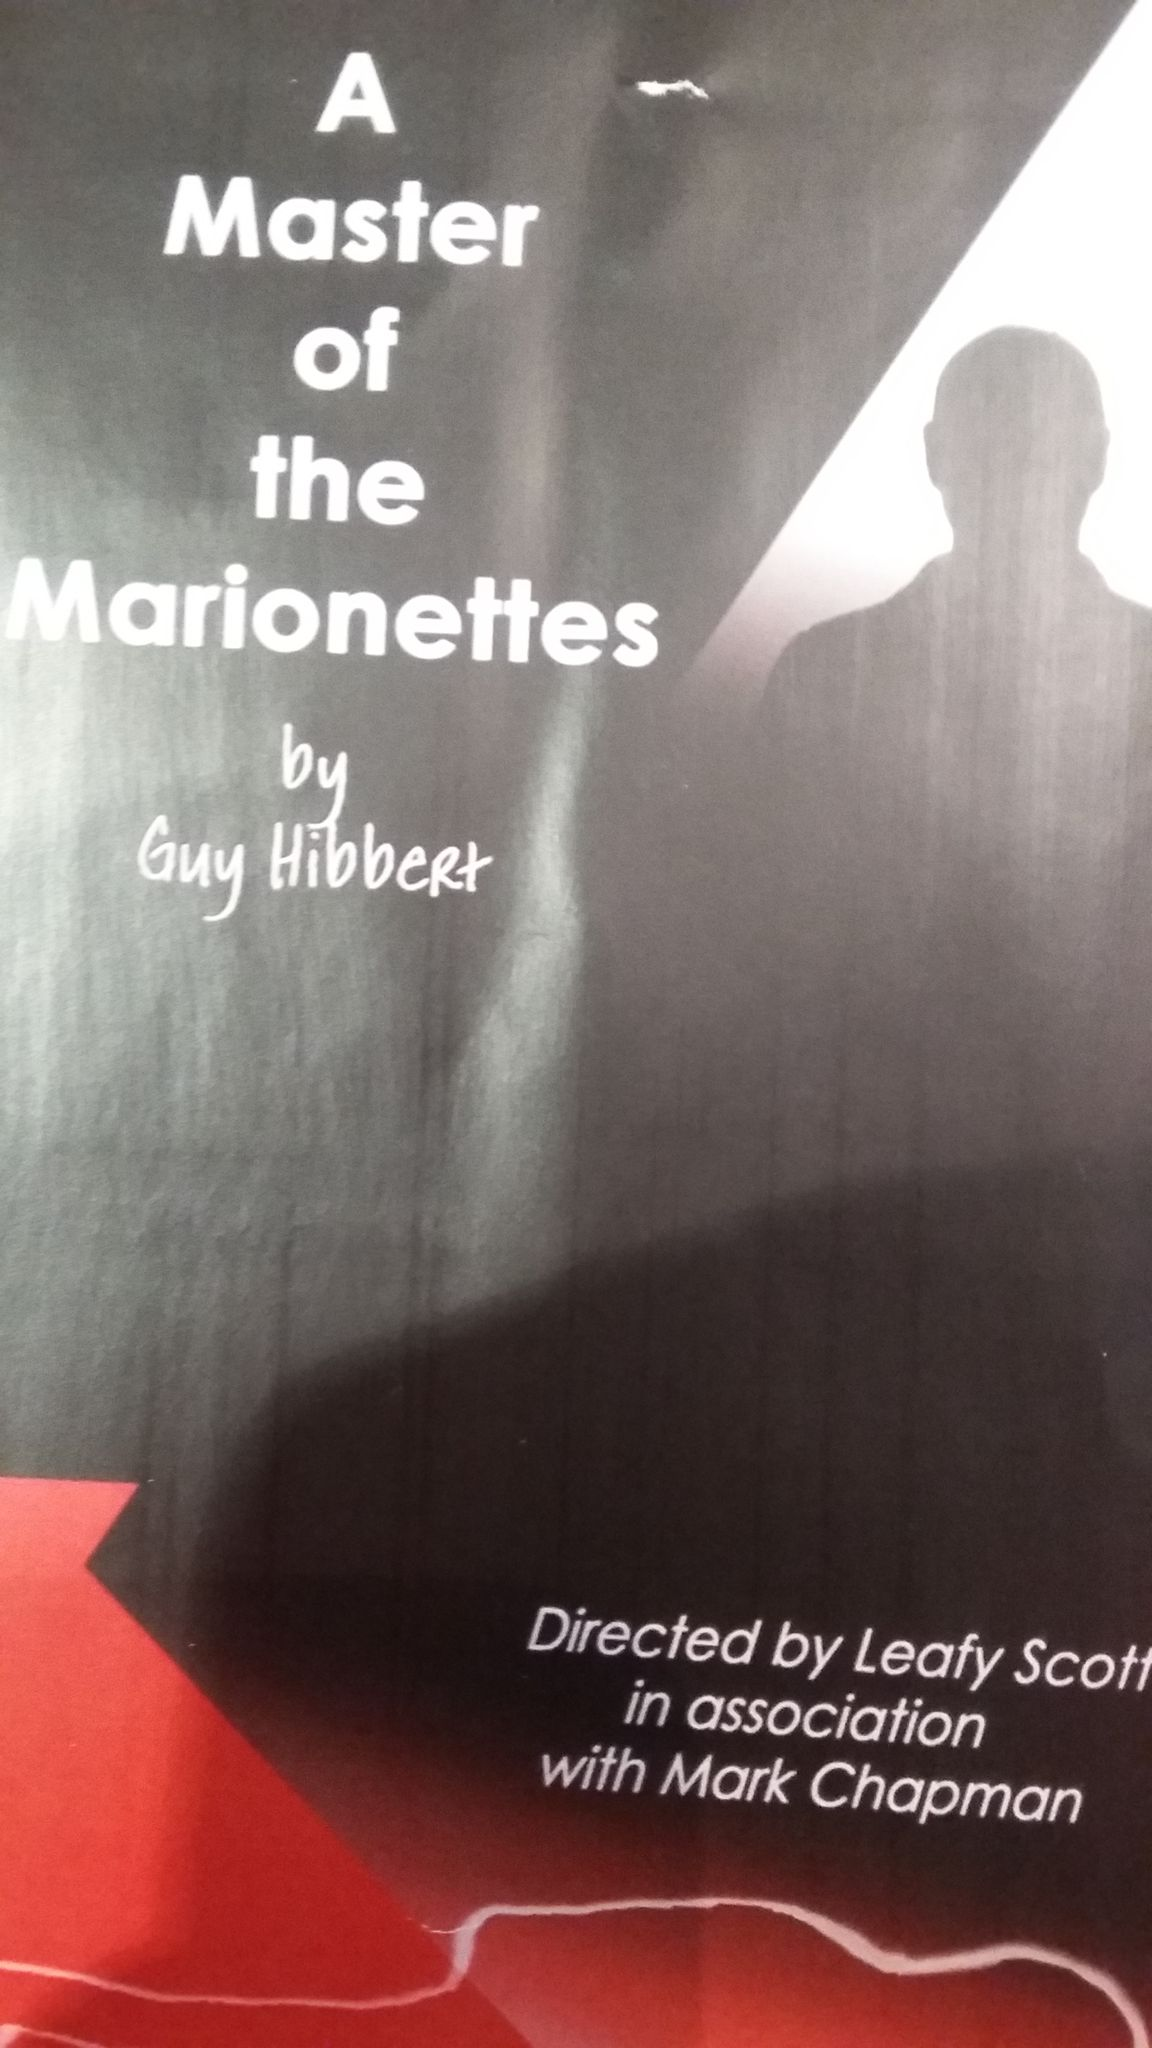 Master of the Marionettes by Guy Hibbert. World premiere